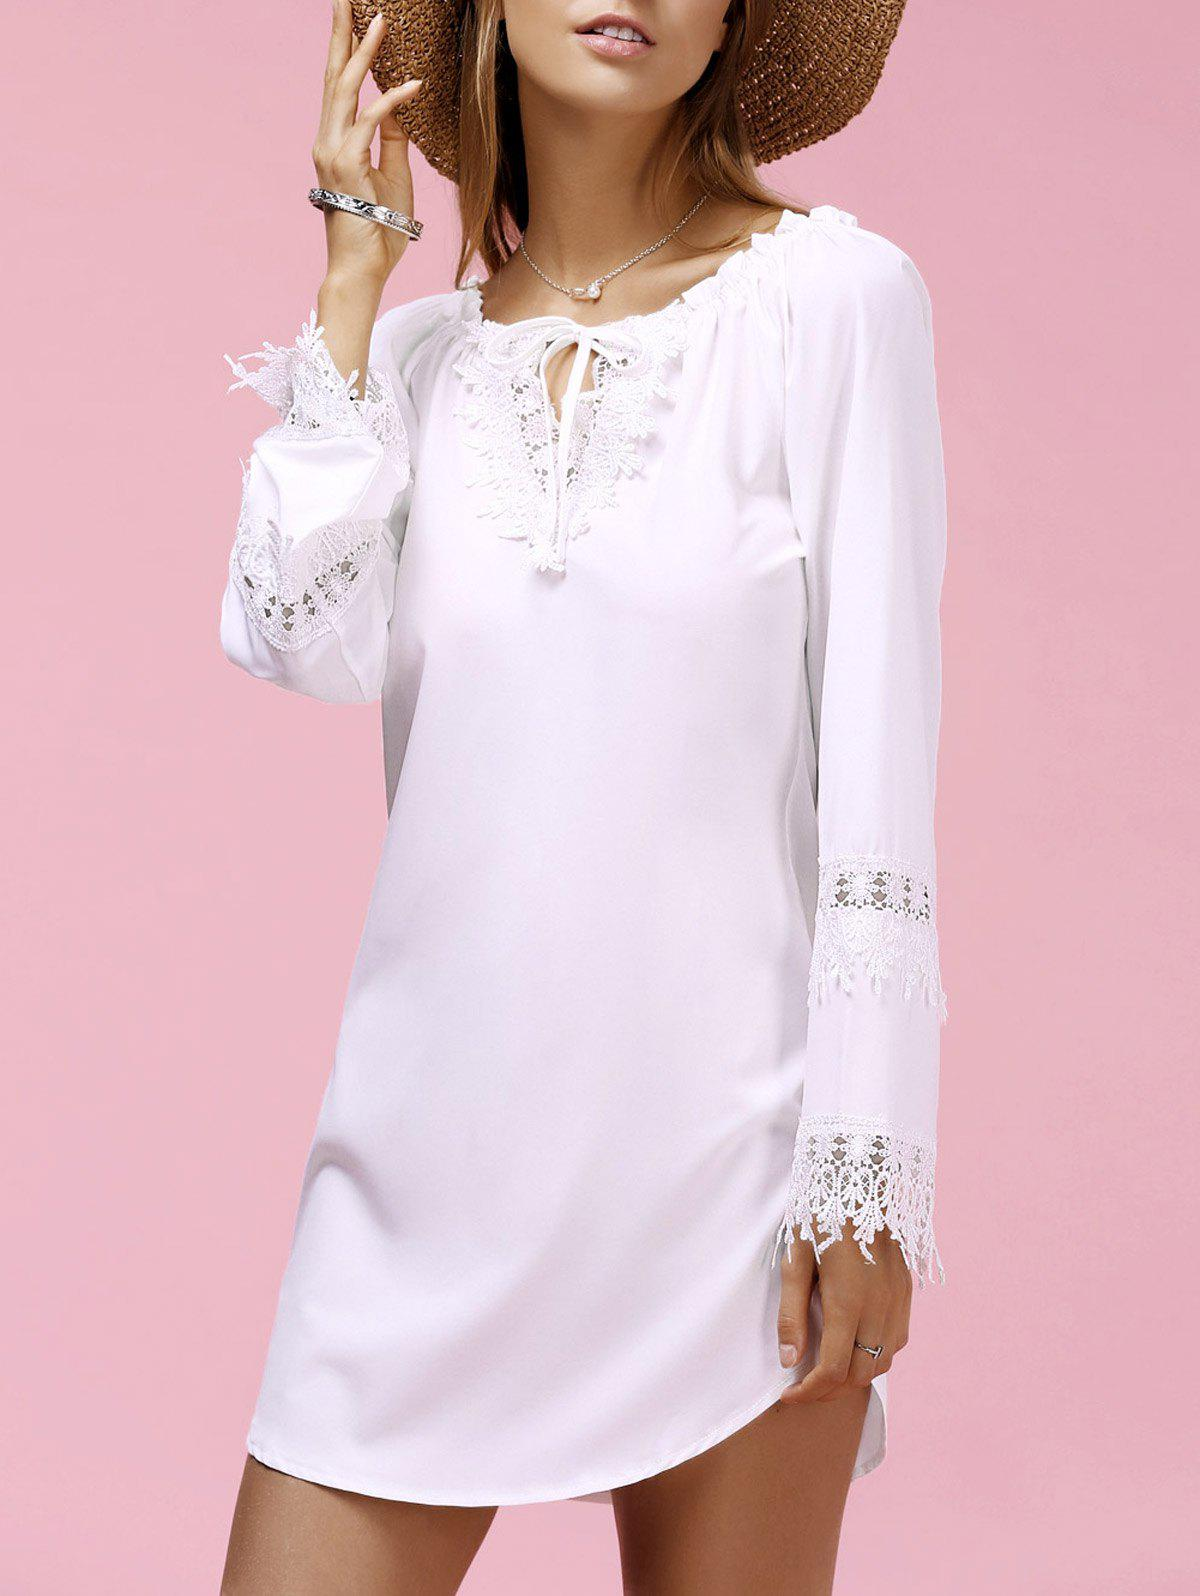 Refreshing Jewel Neck Lace Spliced Long Sleeve Dress For WomenWomen<br><br><br>Size: L<br>Color: WHITE